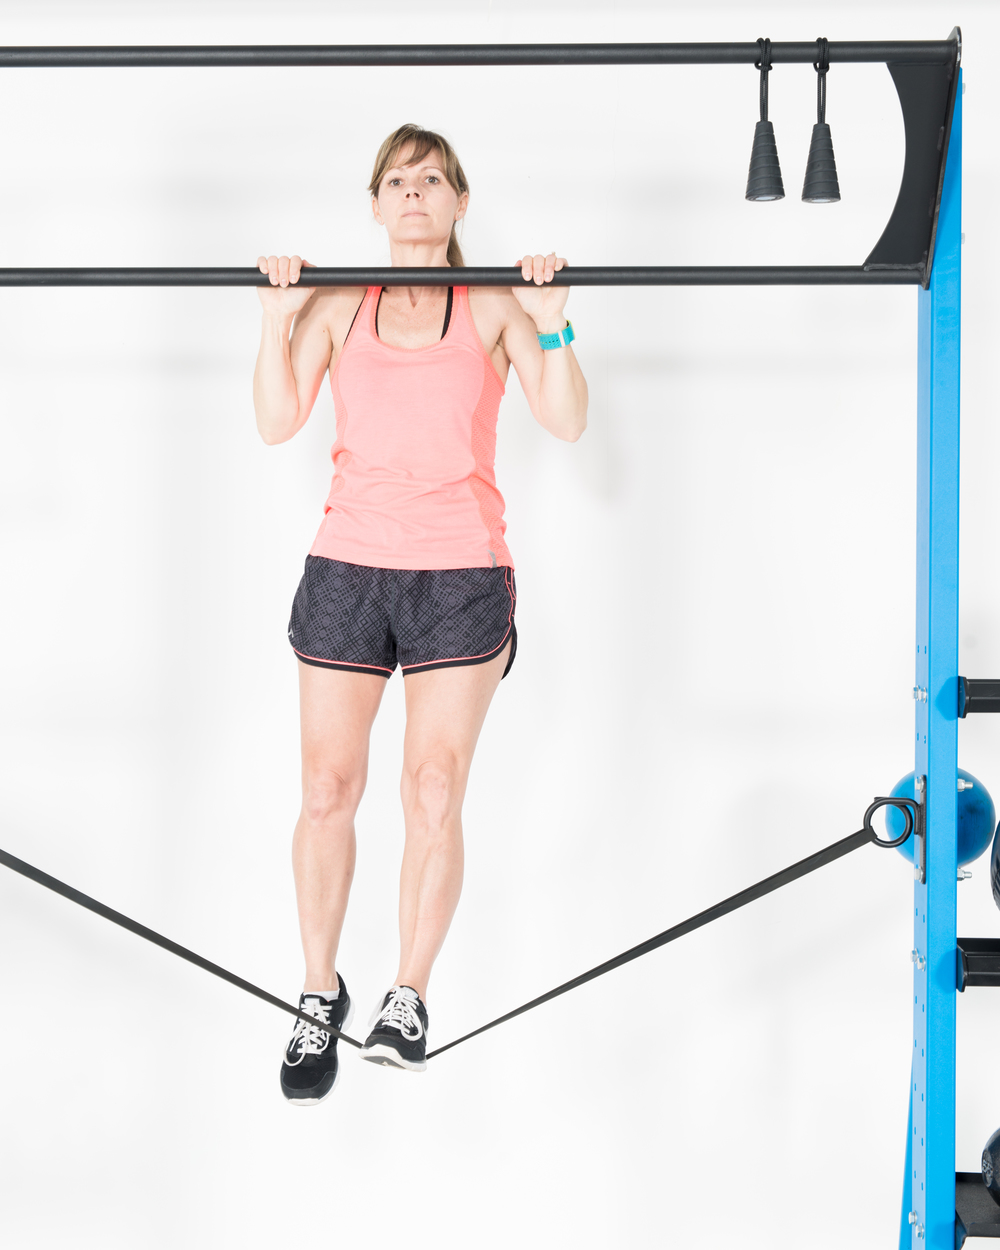 Band assist pull-ups